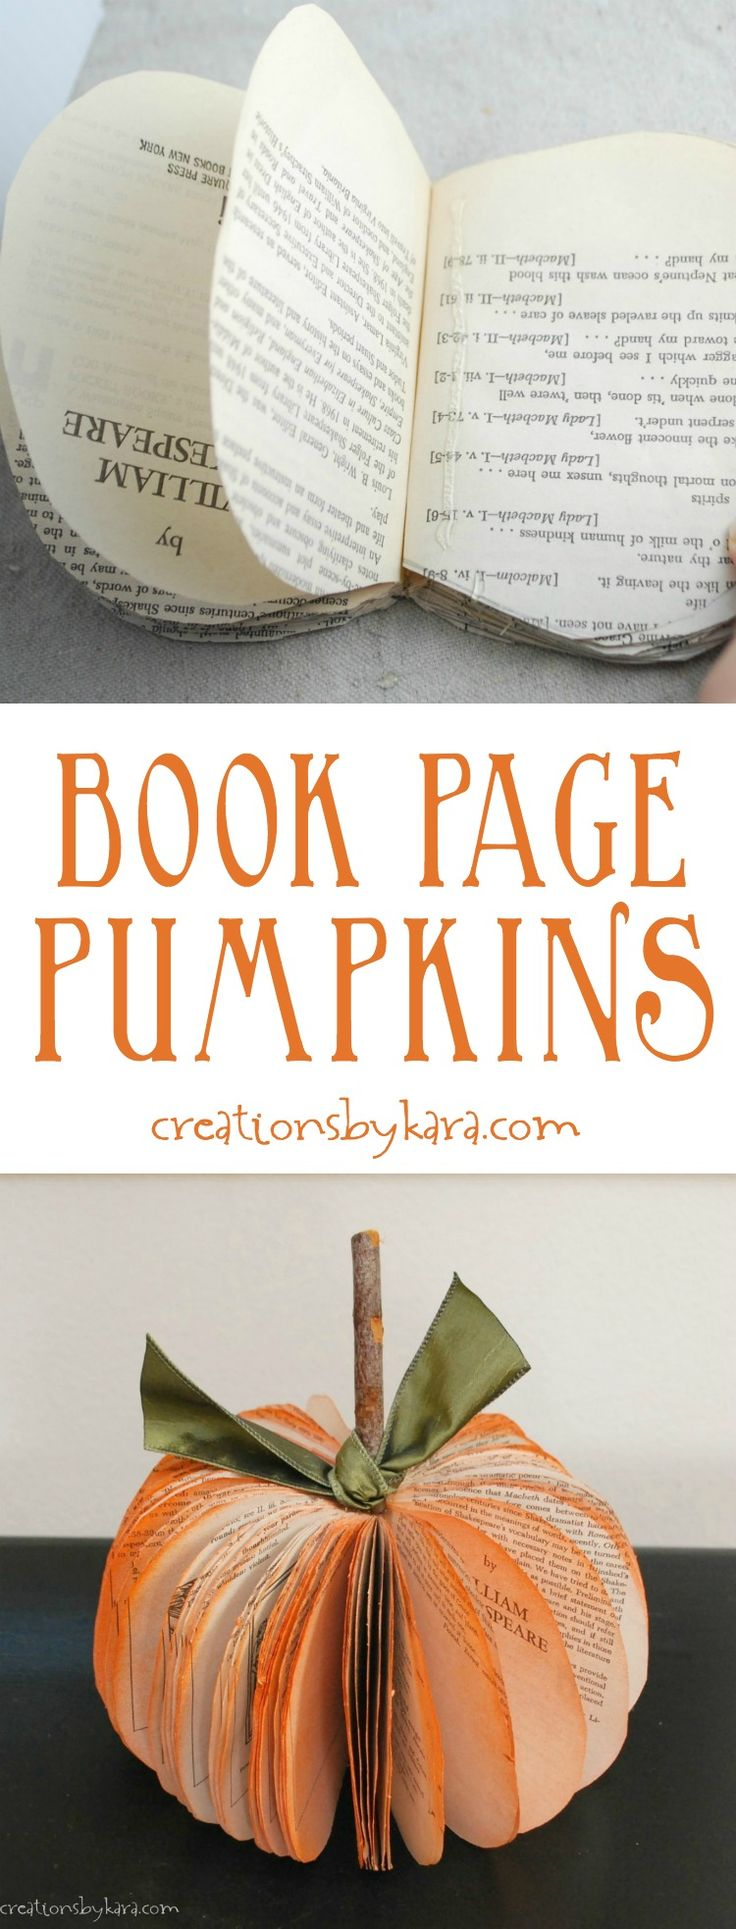 These book page pumpkins are easy to